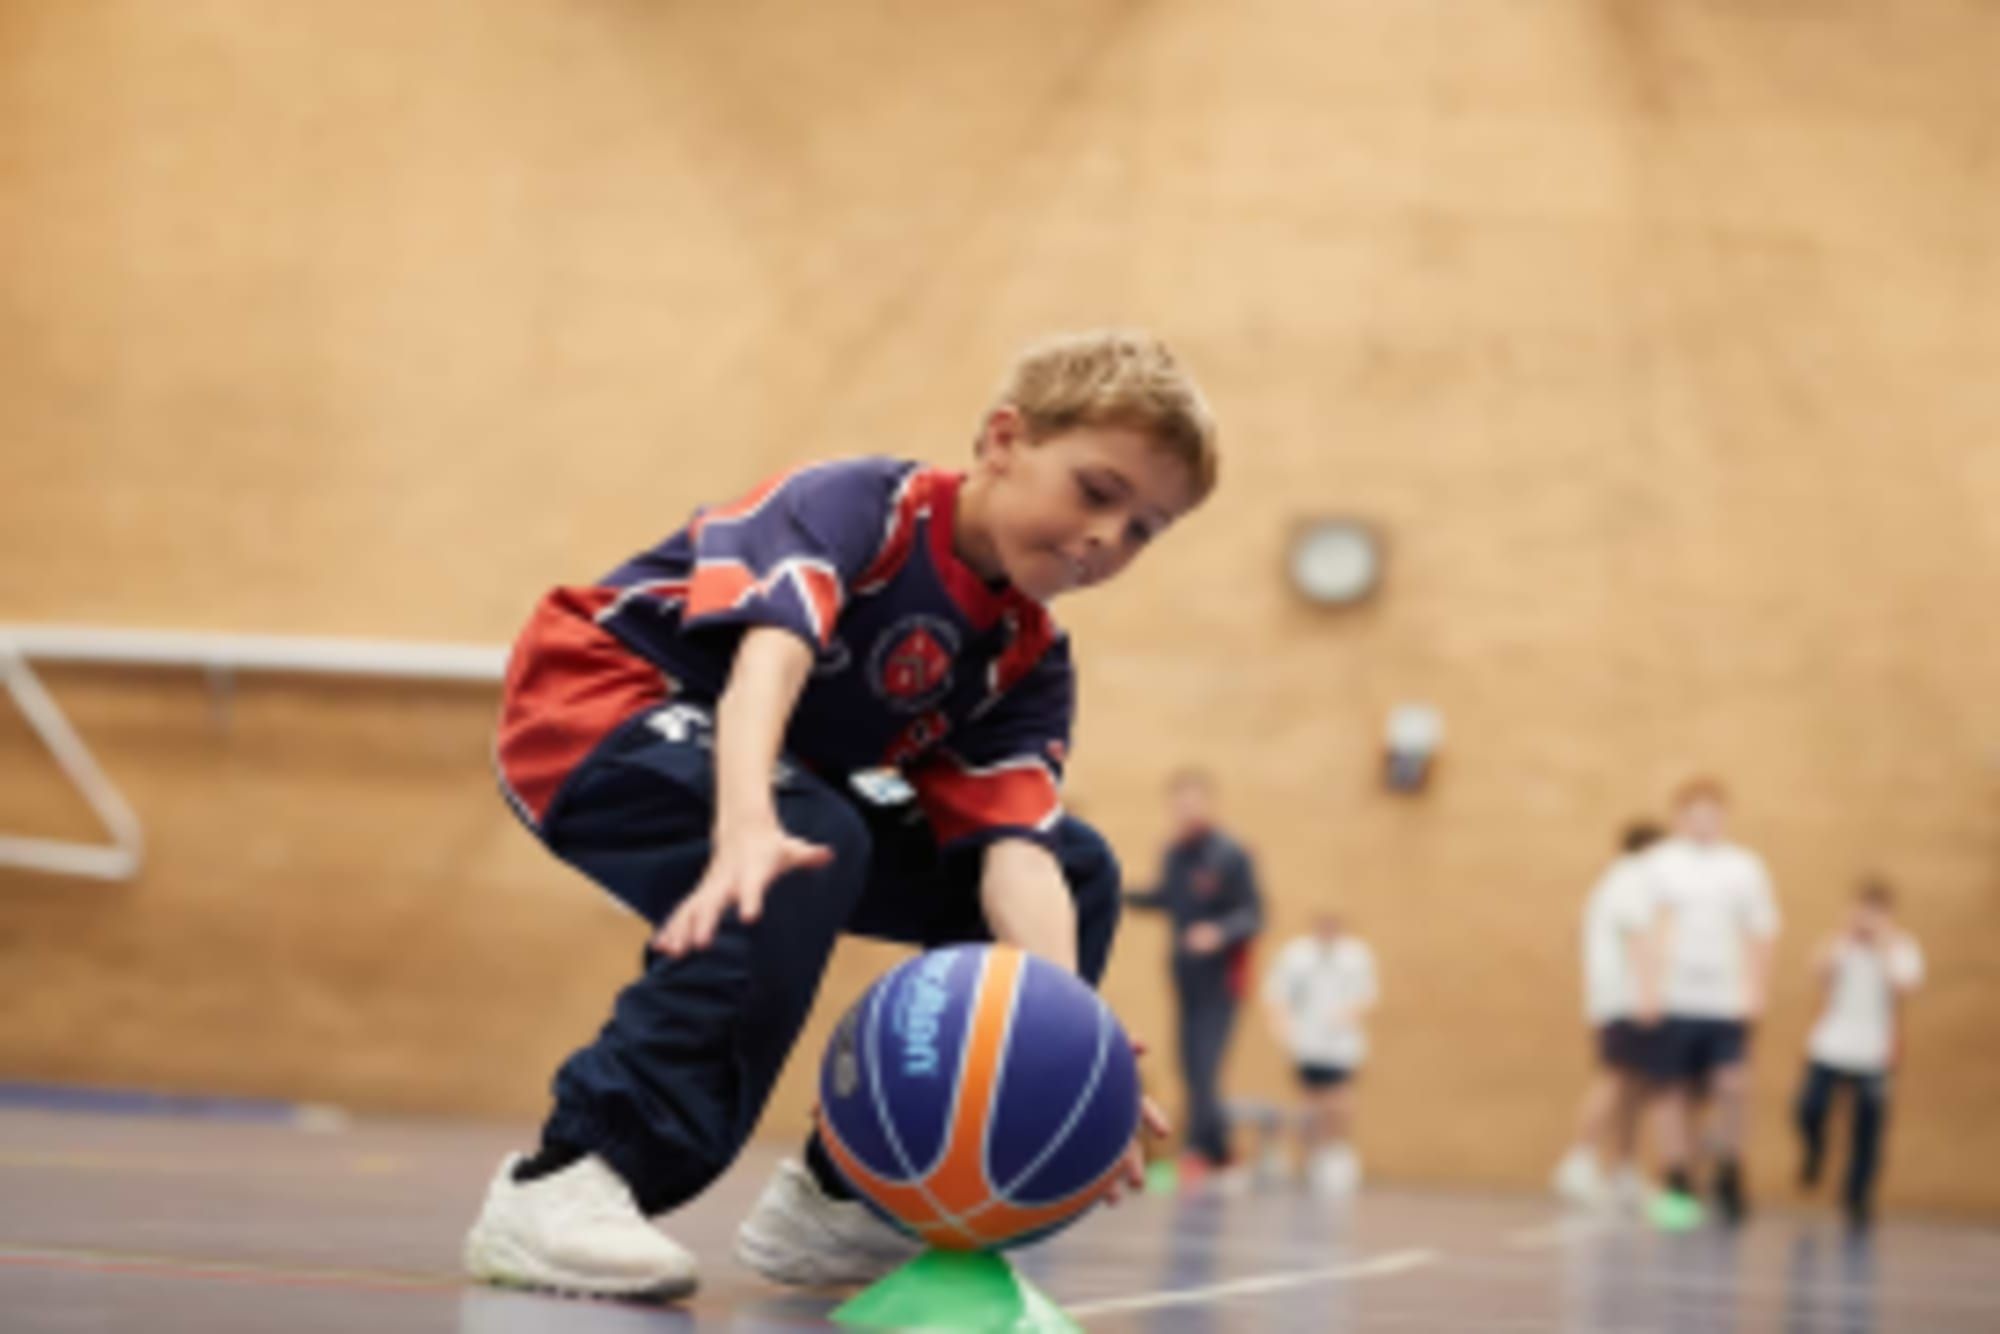 Year 6 pupil training in sports hall